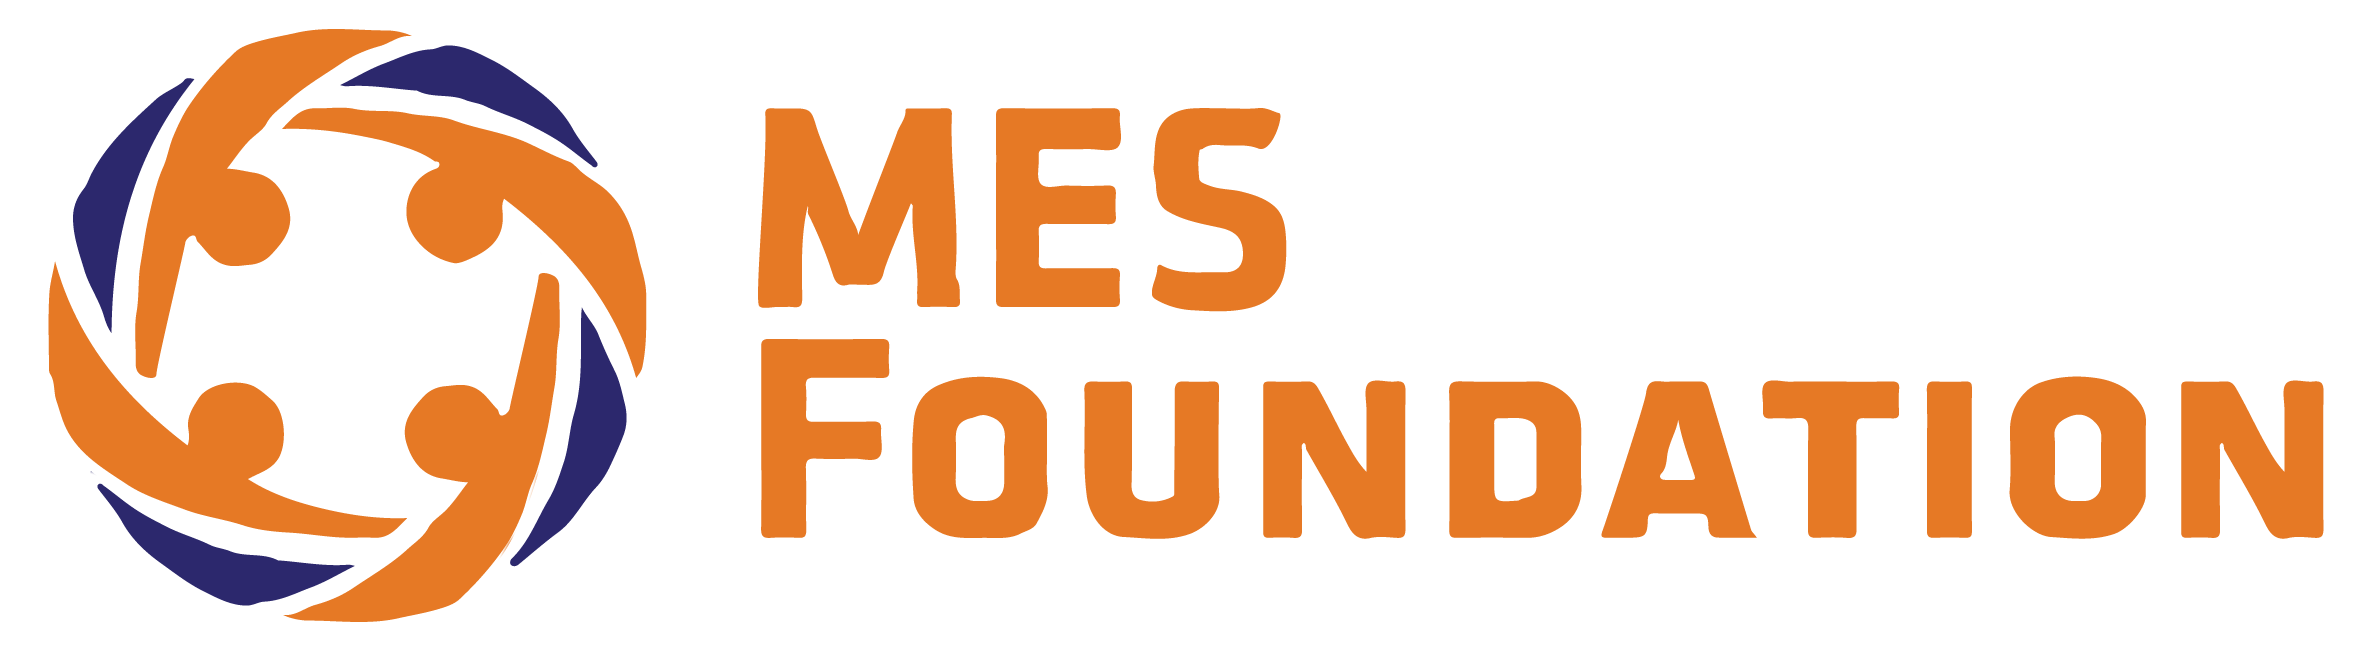 MES Foundation